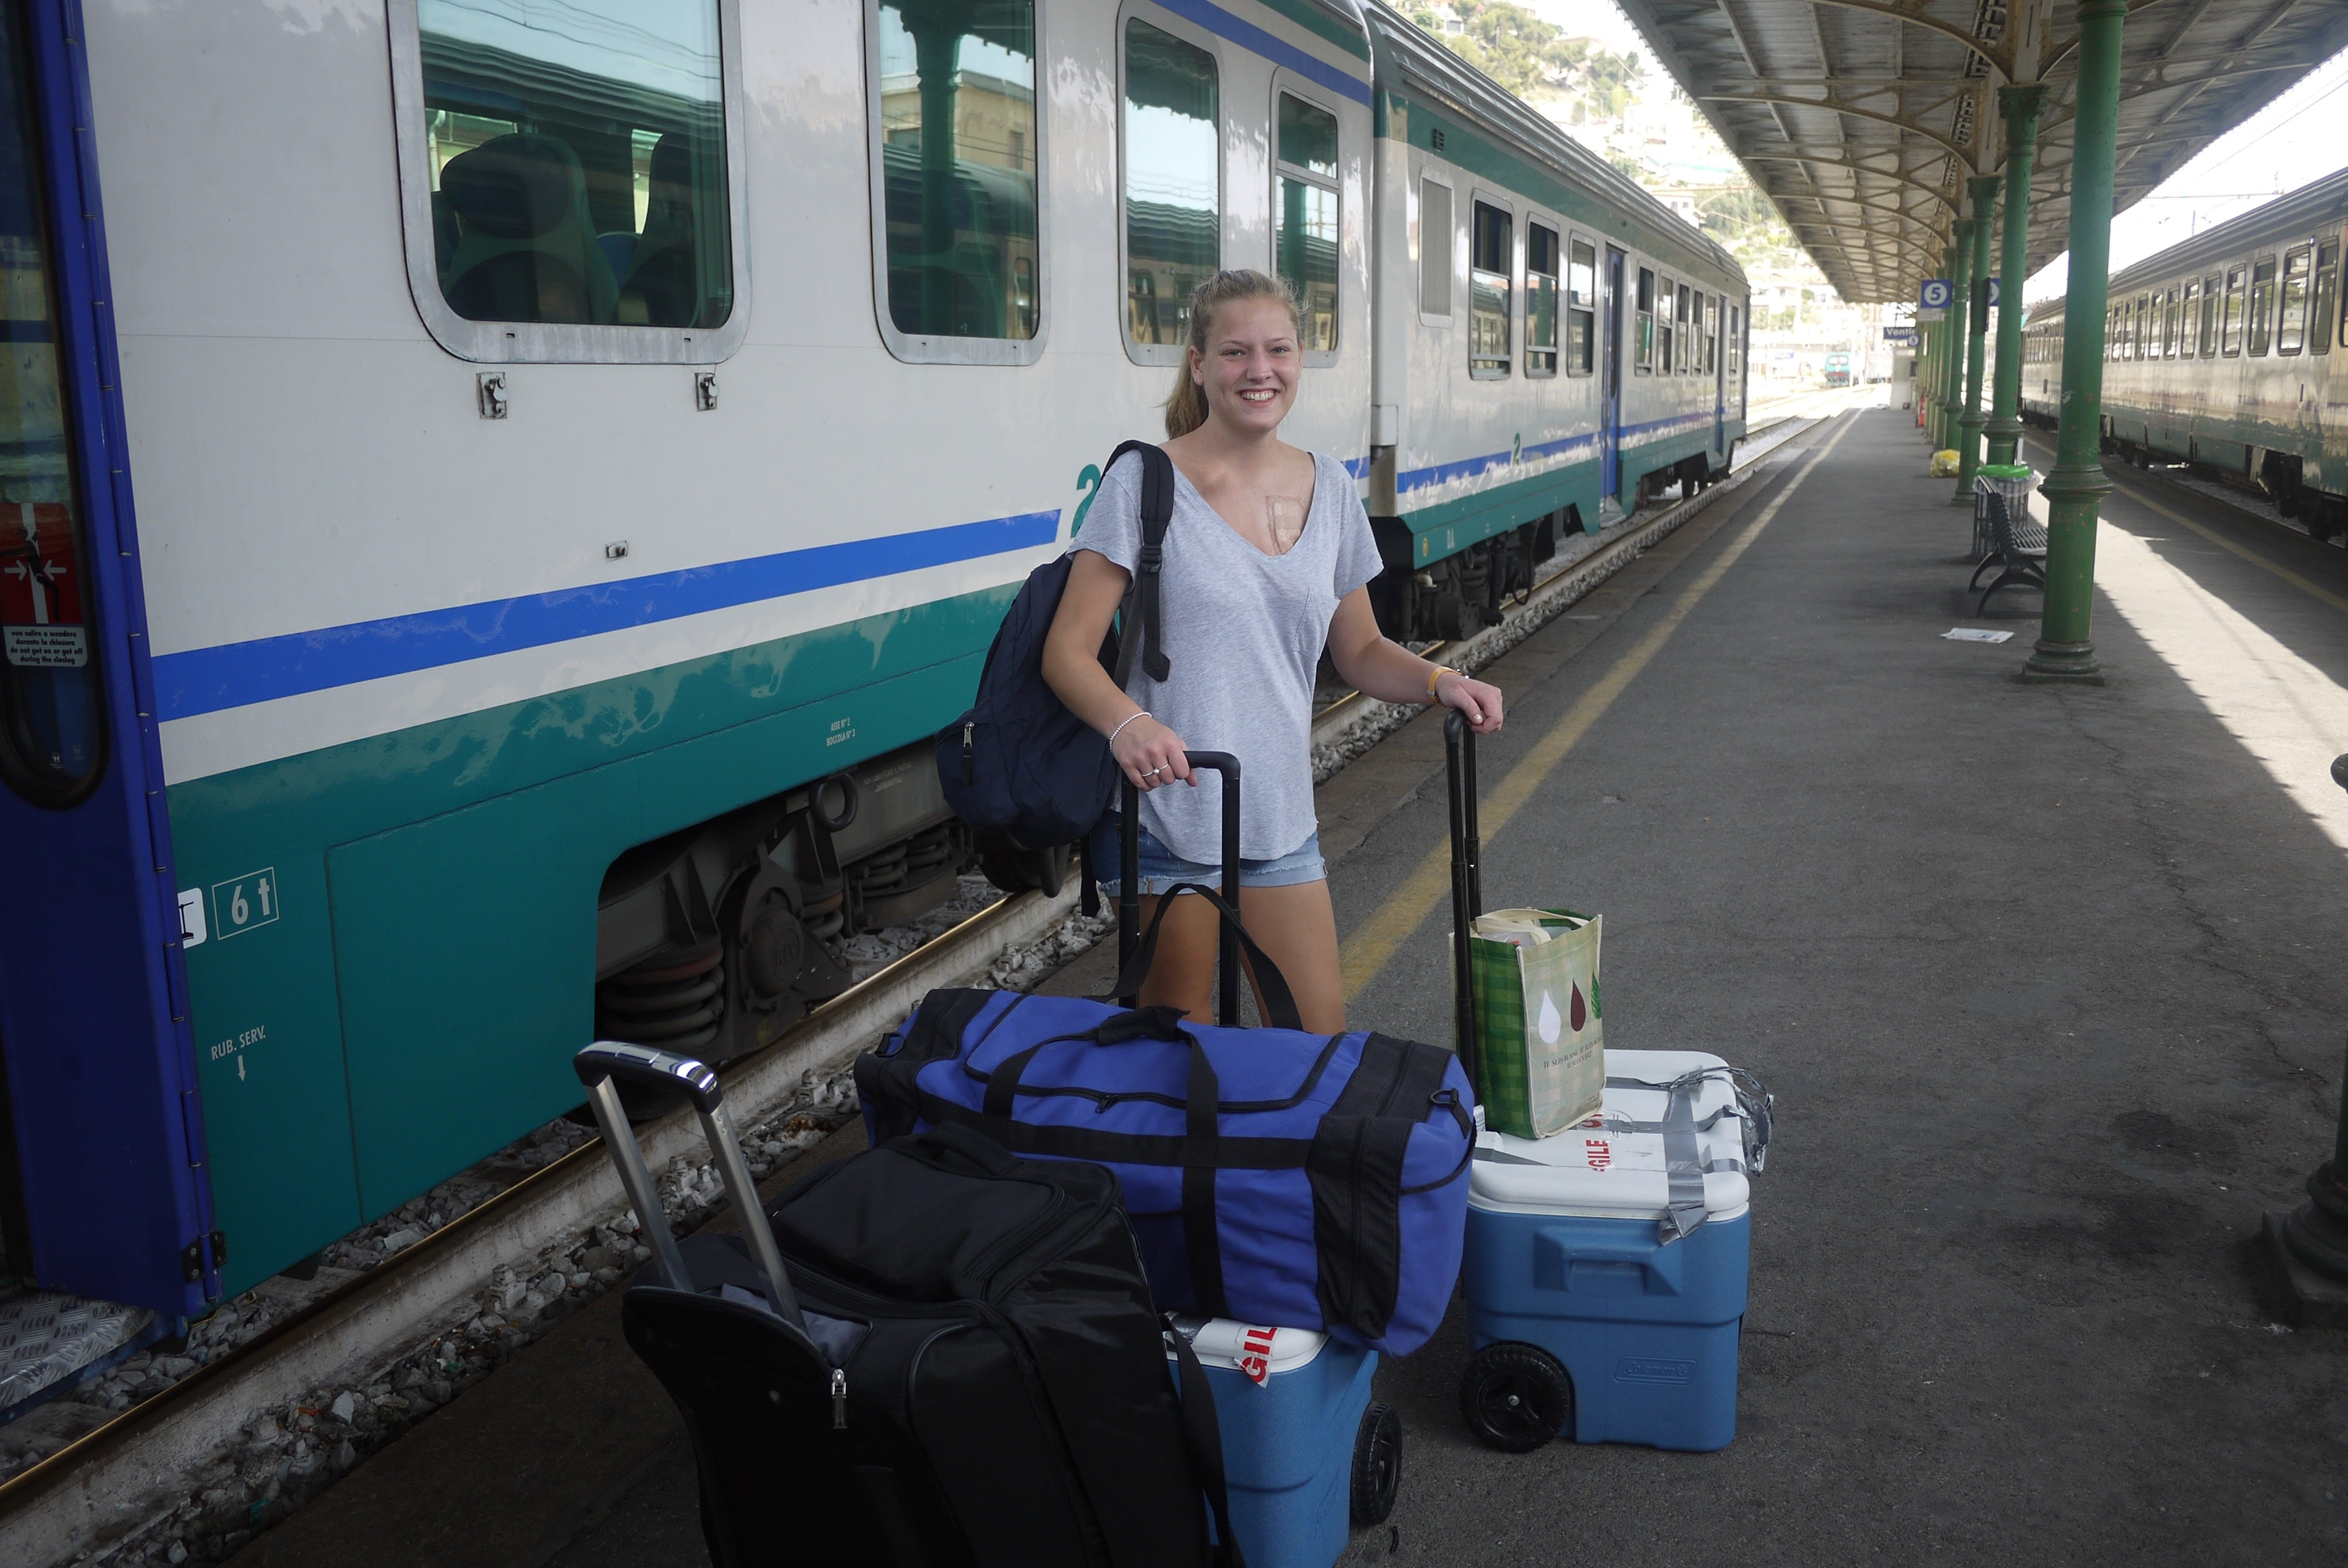 Justine during her trip to Europe, 4 years after her accident.